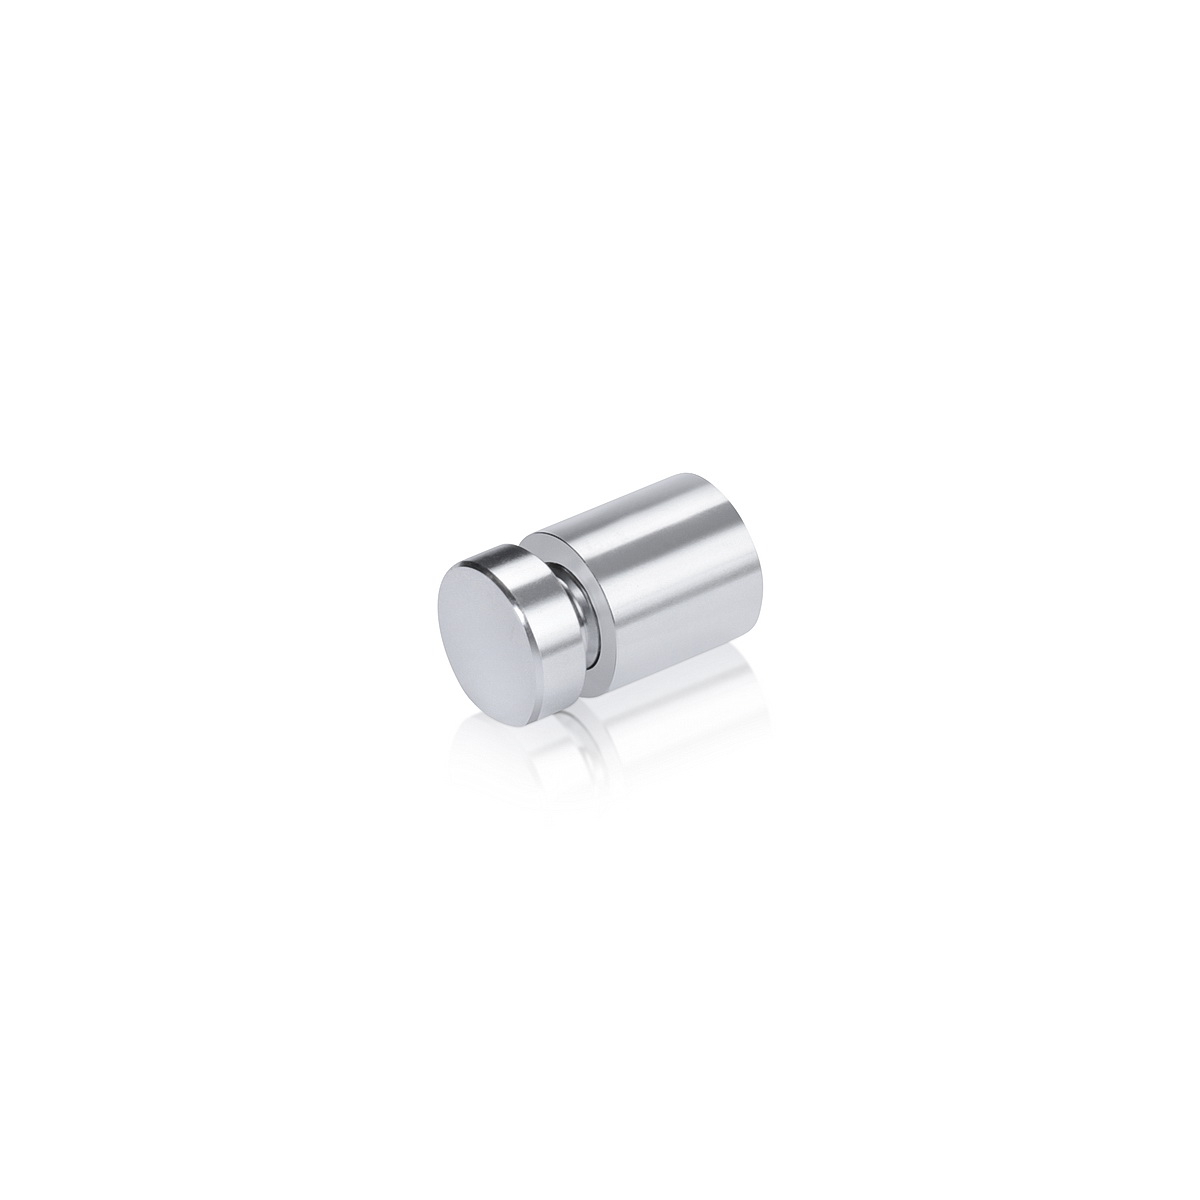 (Set of 4) 1/2'' Diameter X 1/2'' Barrel Length, Affordable Aluminum Standoffs, Silver Anodized Finish Easy Fasten Standoff and (4) 2208Z Screw and (4) ANC1 Anchor for concrete or drywall (For Inside / Outside use)